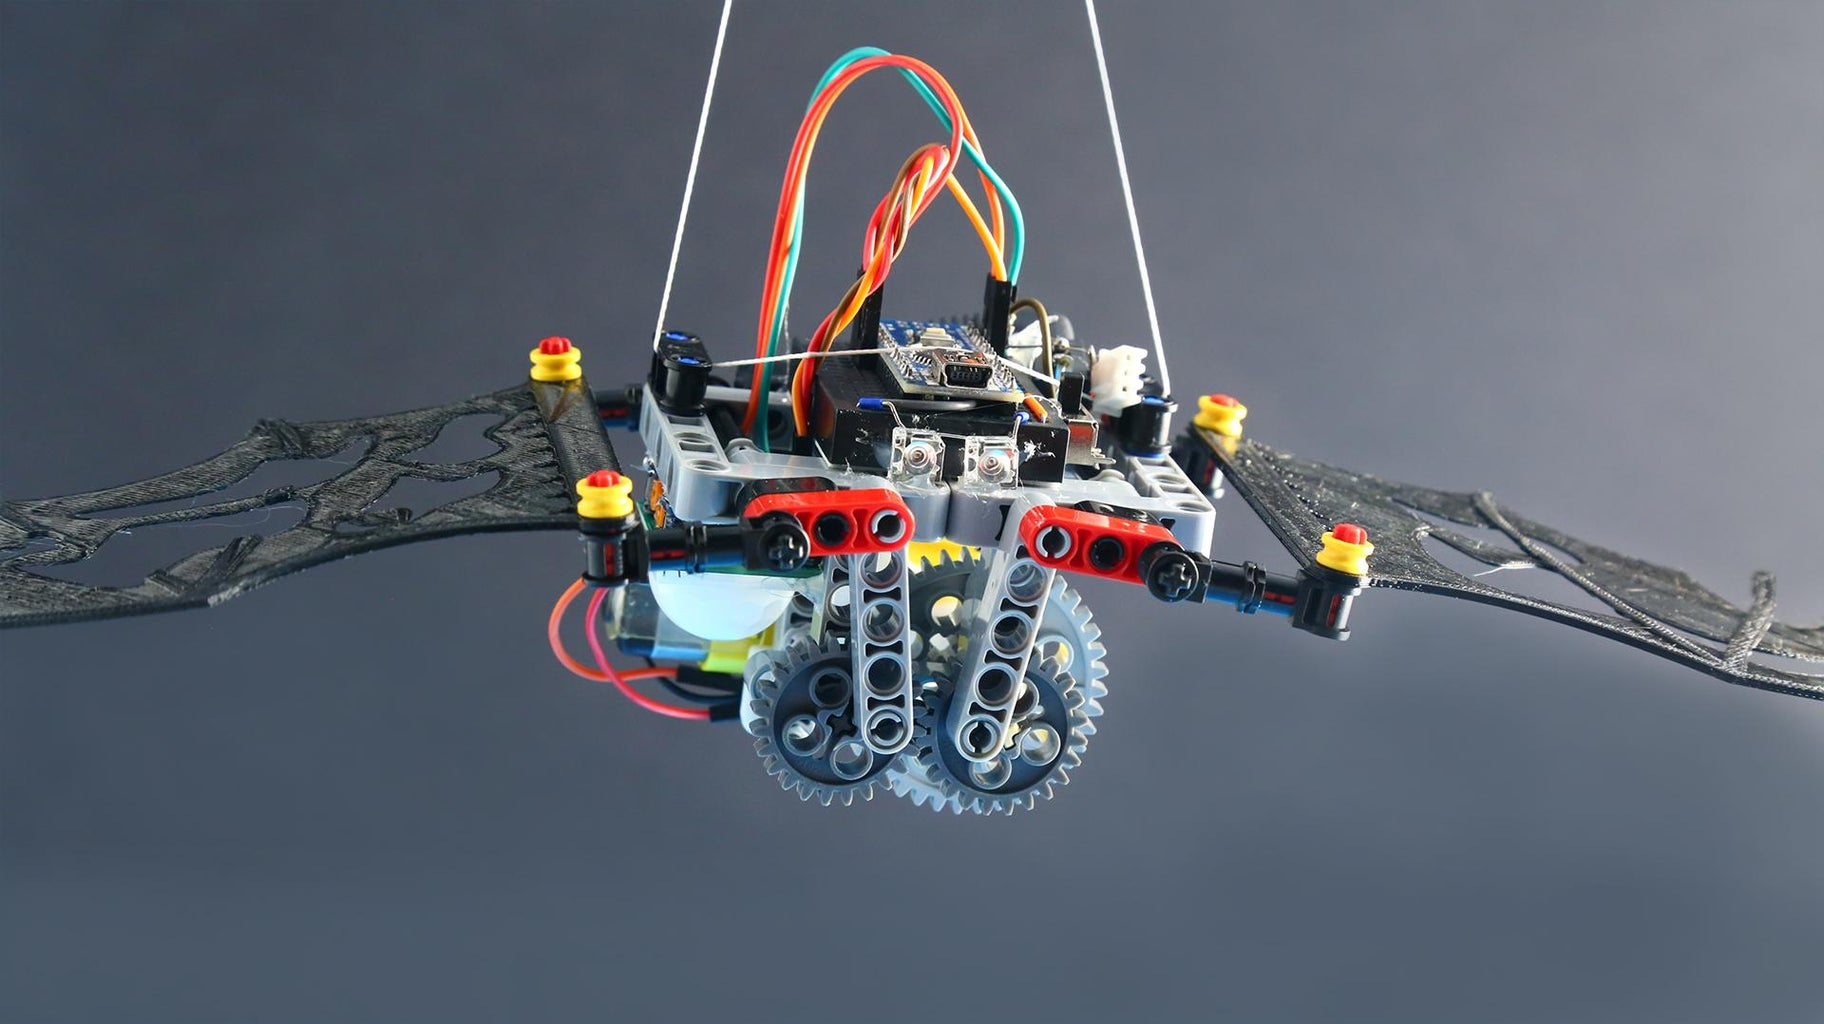 A Crank Mechanism for the Flapping Wings